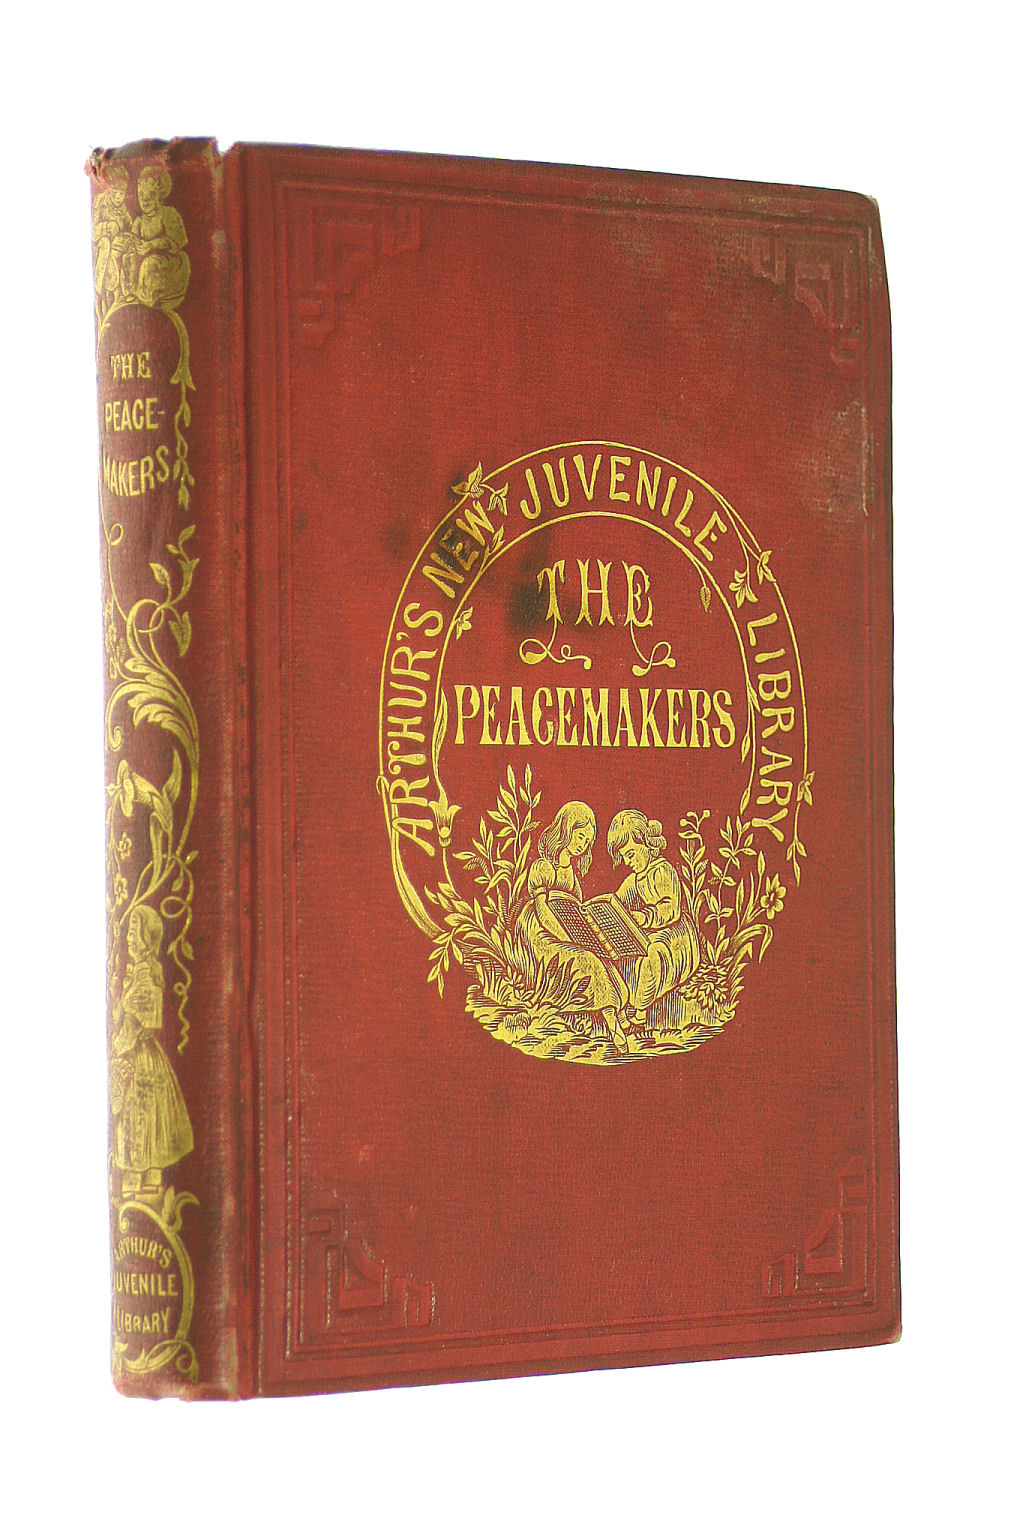 Image for Cedardale, or, The peacemakers: A story of village life (Arthur's Juvenile library)